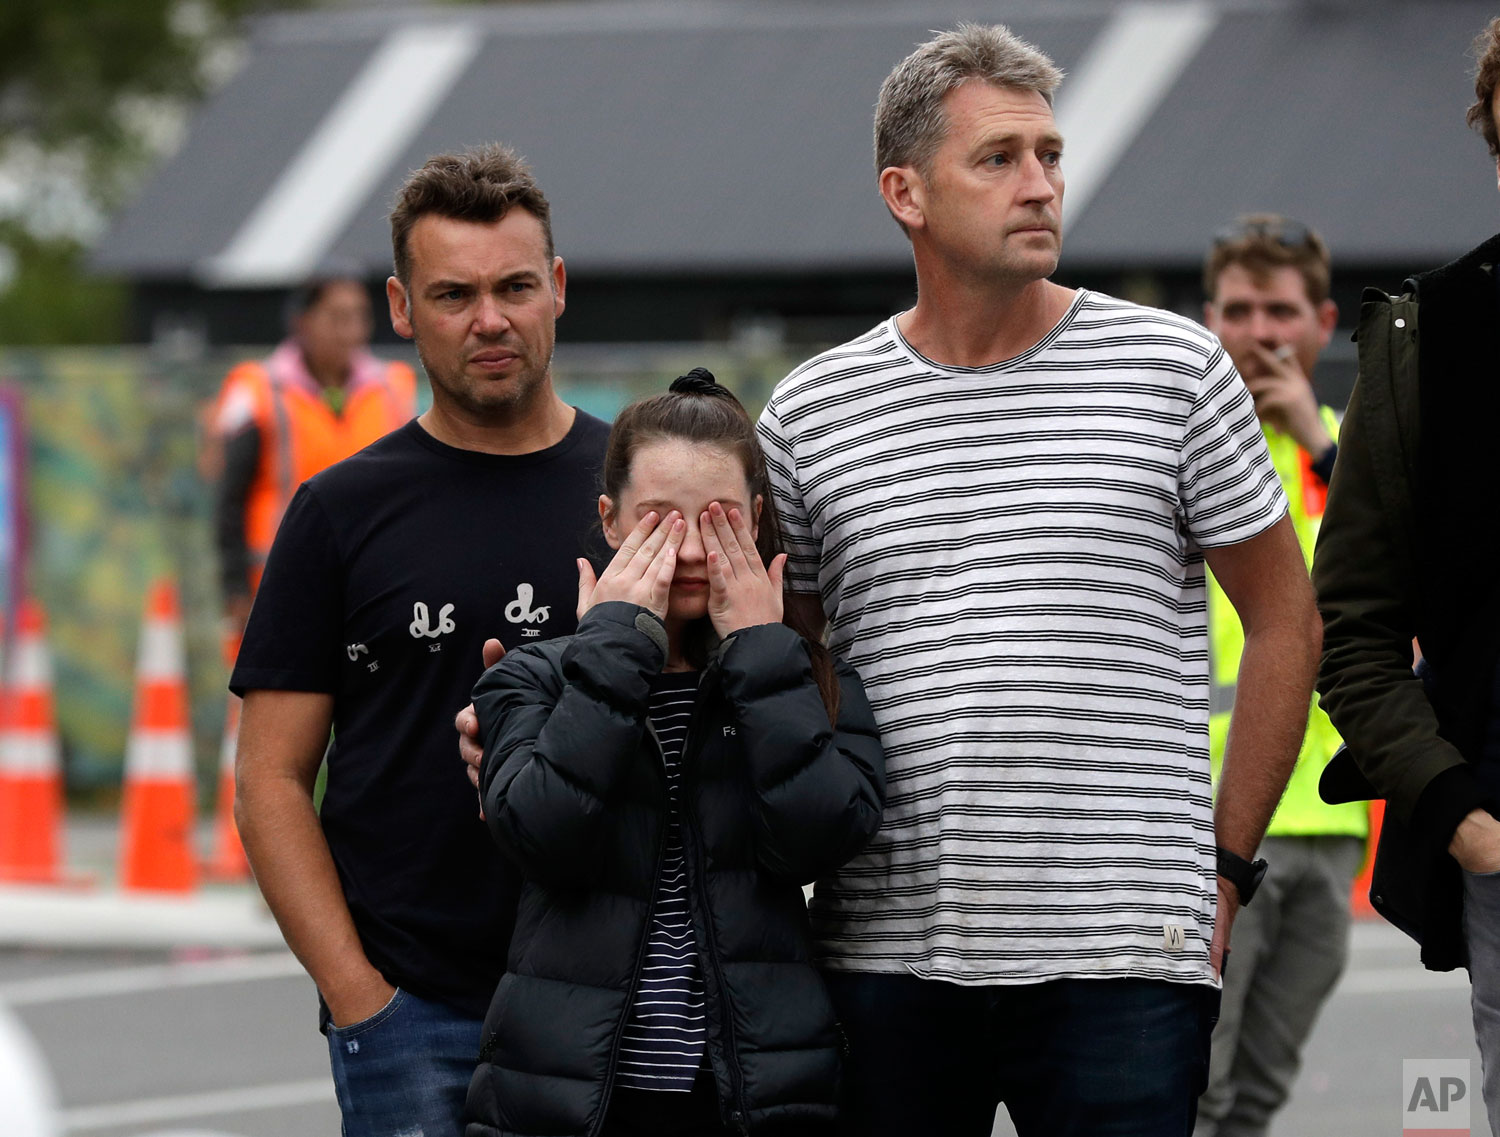 Mourners pay their respects at a makeshift memorial near the Masjid Al Noor mosque in Christchurch, New Zealand, Saturday, March 16, 2019.  (AP Photo/Mark Baker)